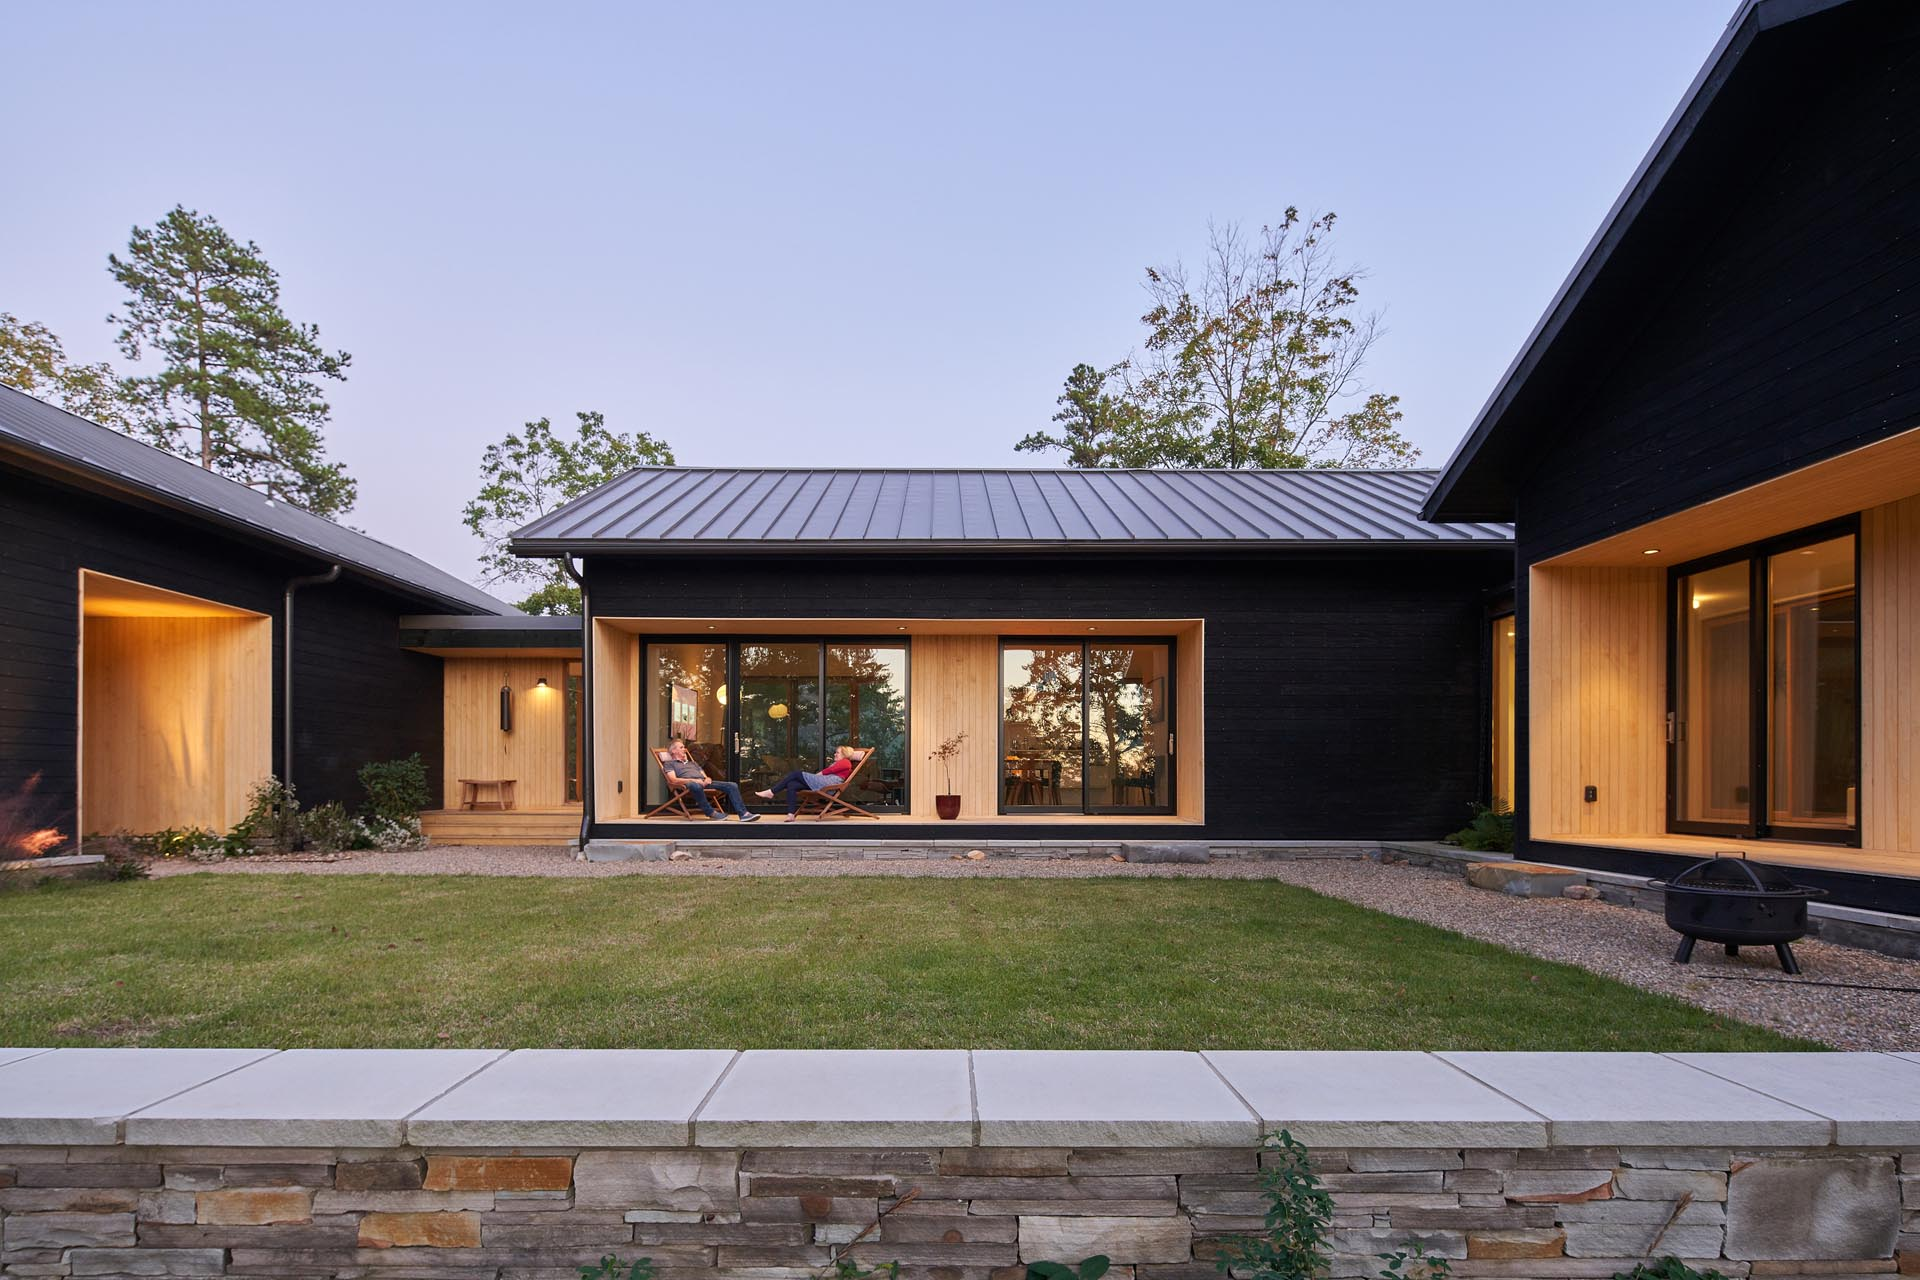 A modern home with burnt wood siding and alcoves lined with contrasting light wood.